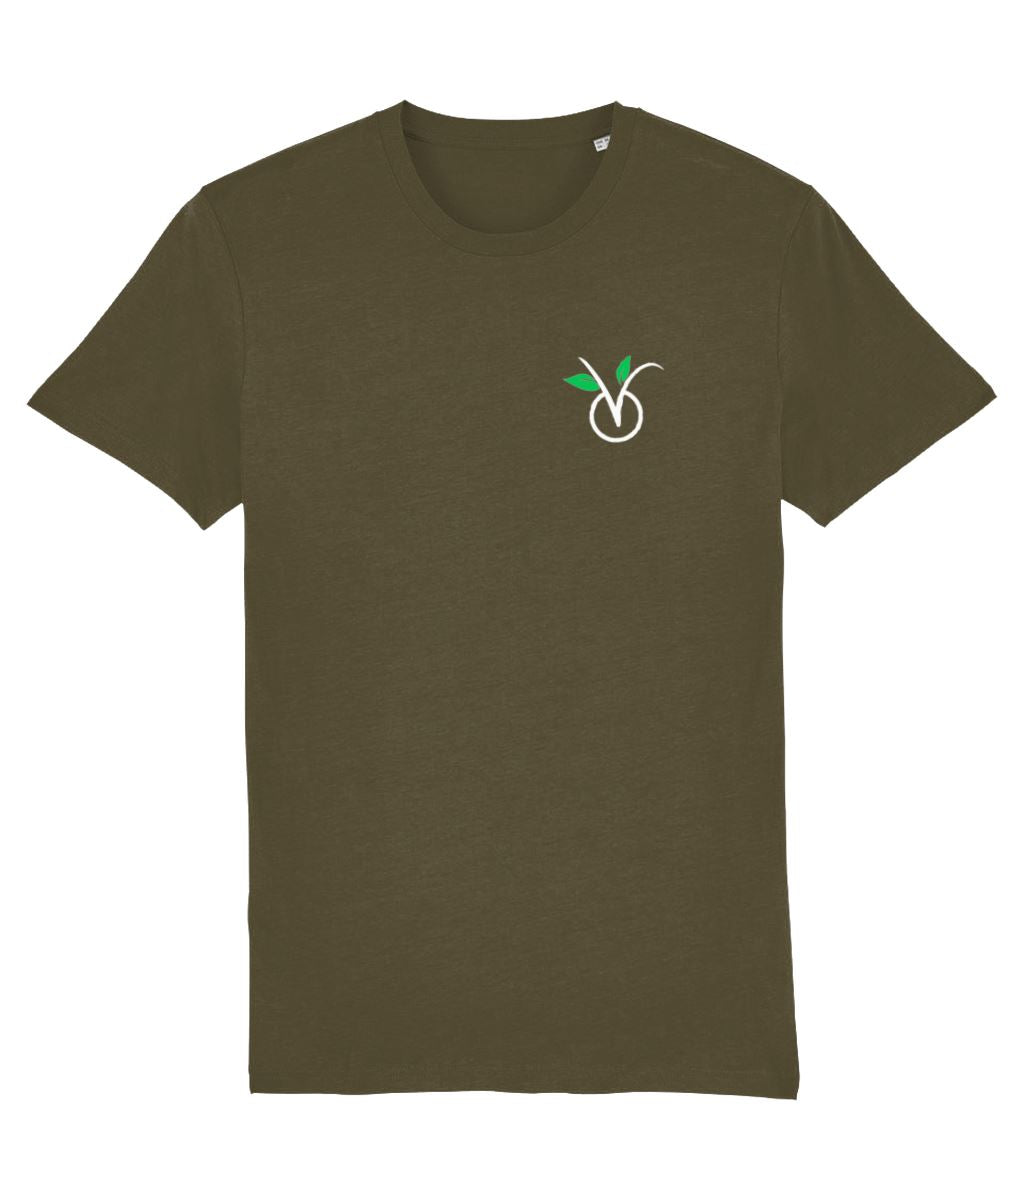 """V"" Vegan T-Shirt - 100% Organic Cotton (Unisex) Clothing Vegan Original British Khaki X-Small"